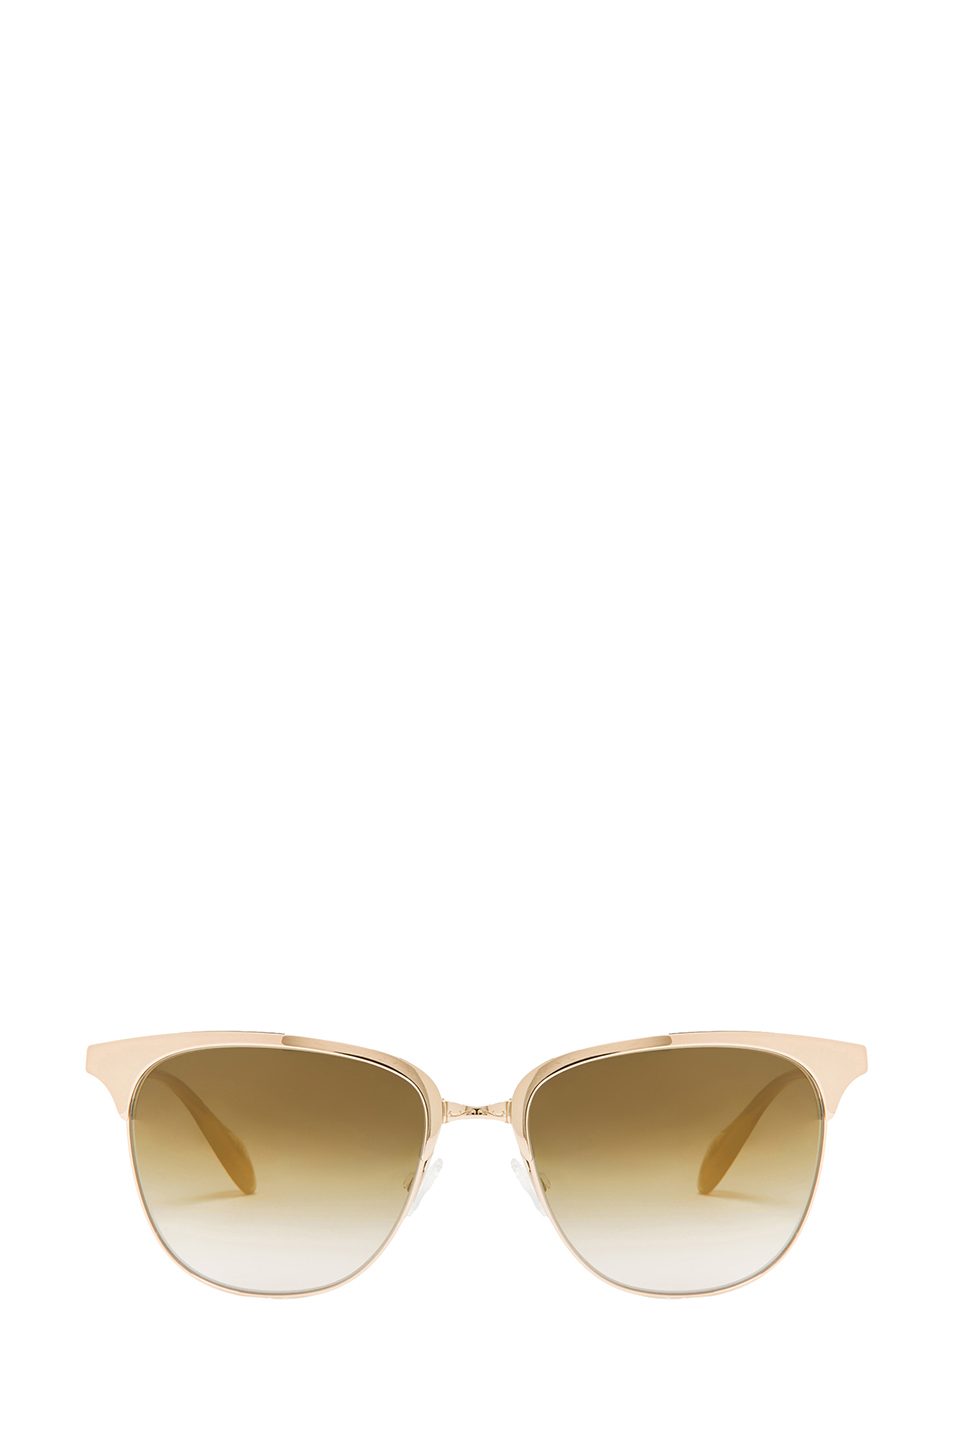 Oliver Peoples | Leiana Flash Mirror Sunglasses in Crystal & Soft Gold